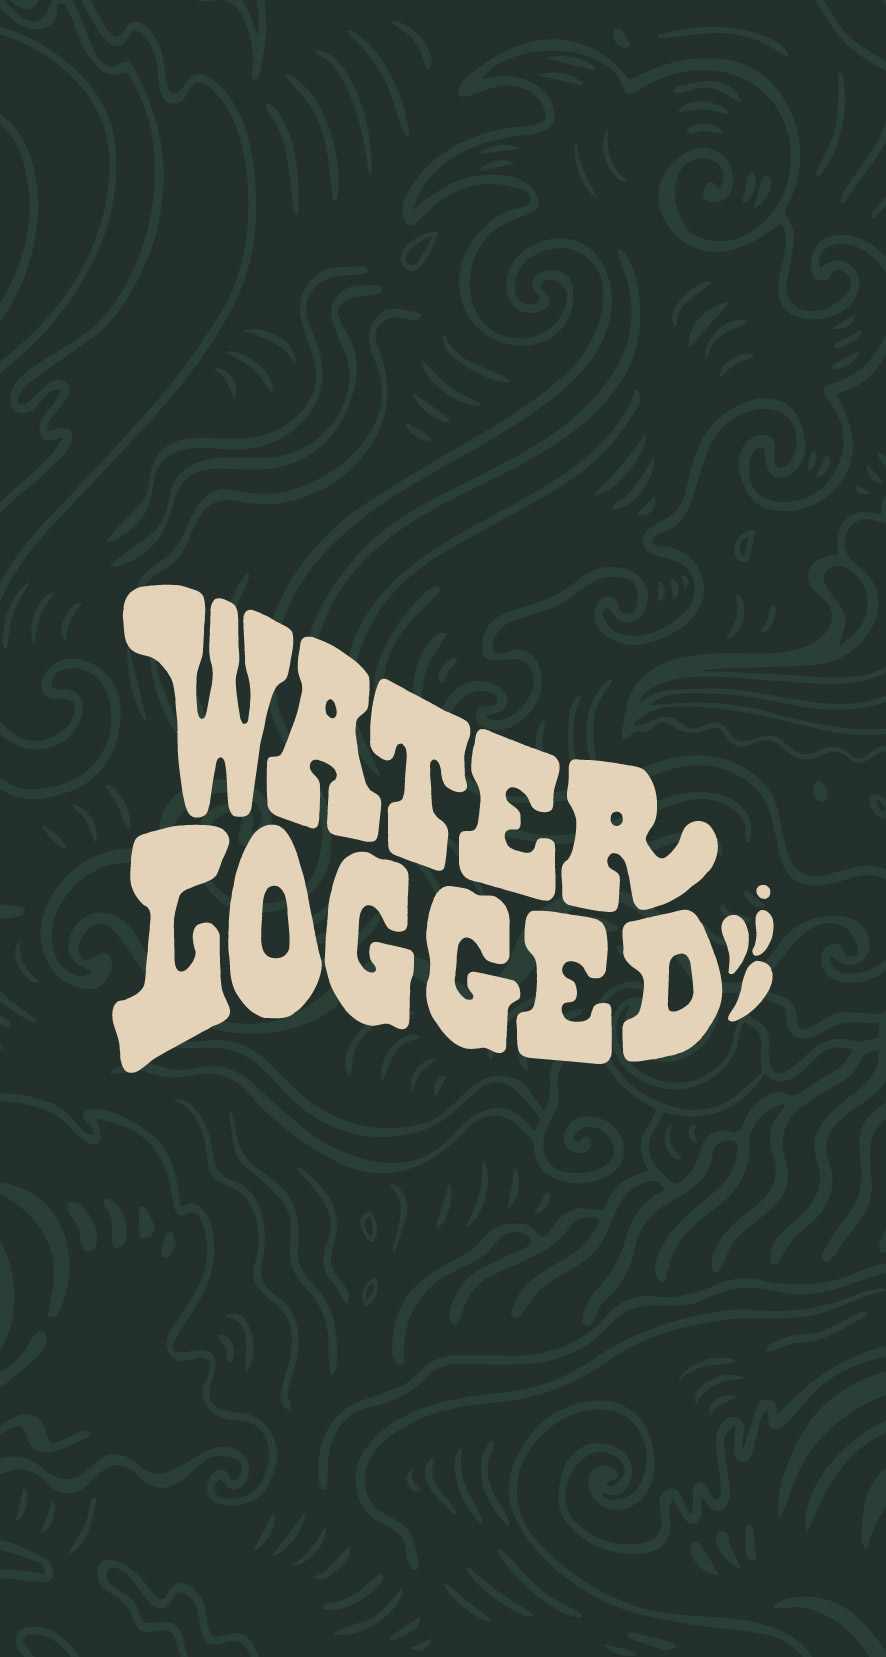 Water-Logged 1962